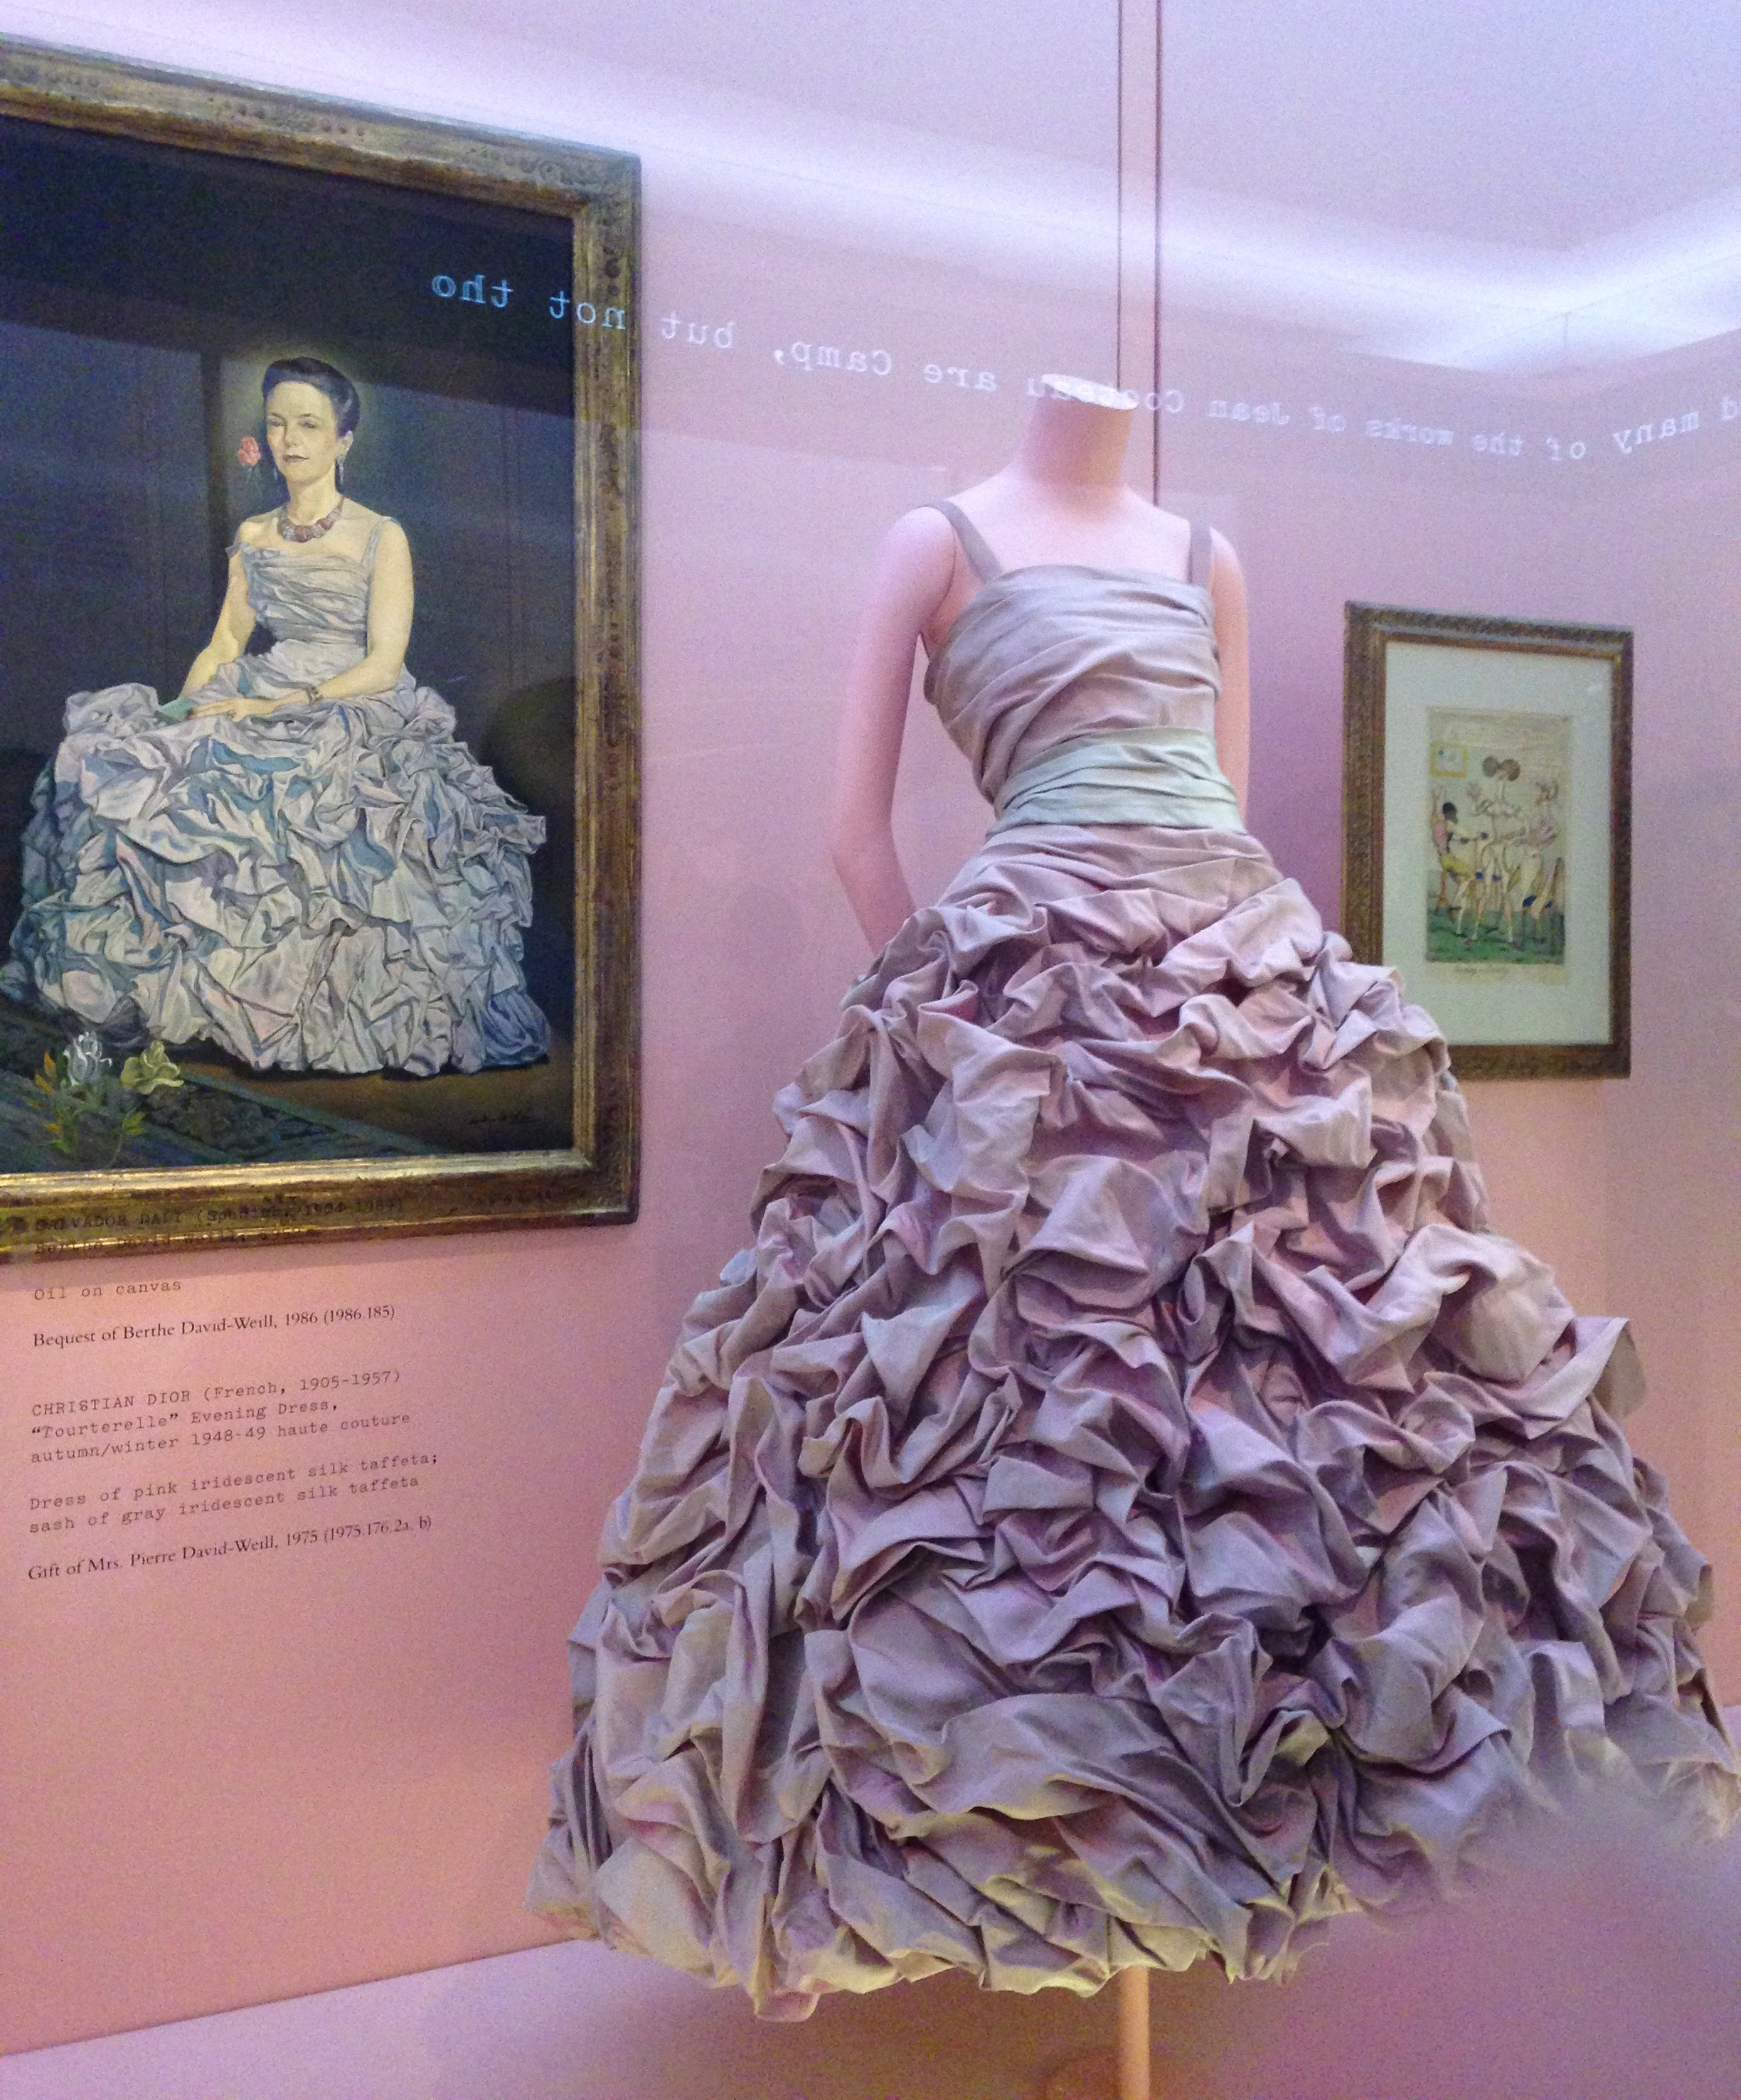 "Christian Dior, ""Tourterelle"" Evening Dress, autumn/winter 1948-49, dress of pink iridescent silk taffeta; sash of gray iridescent silk taffeta"